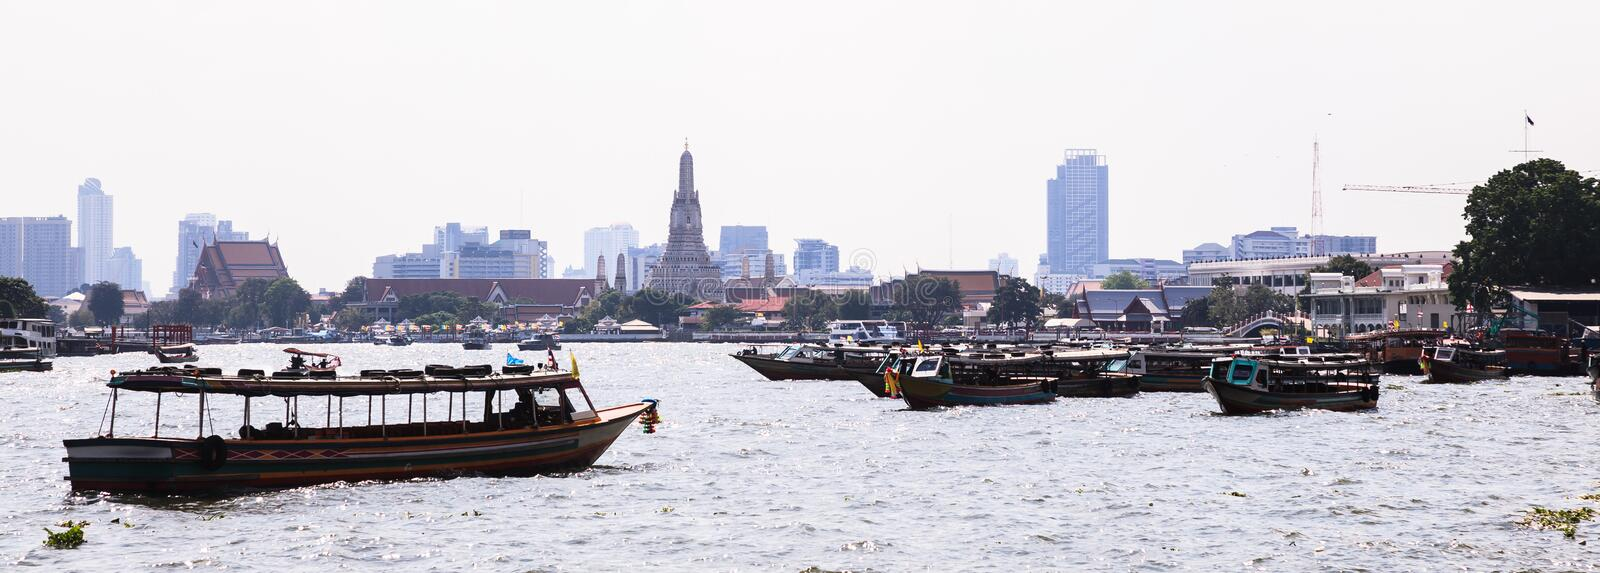 Thai riverside naval commuter traffic in Chao Phraya River with Wat Arun Temple of Dawn background, Bangkok, Thailand. Thailand royalty free stock images